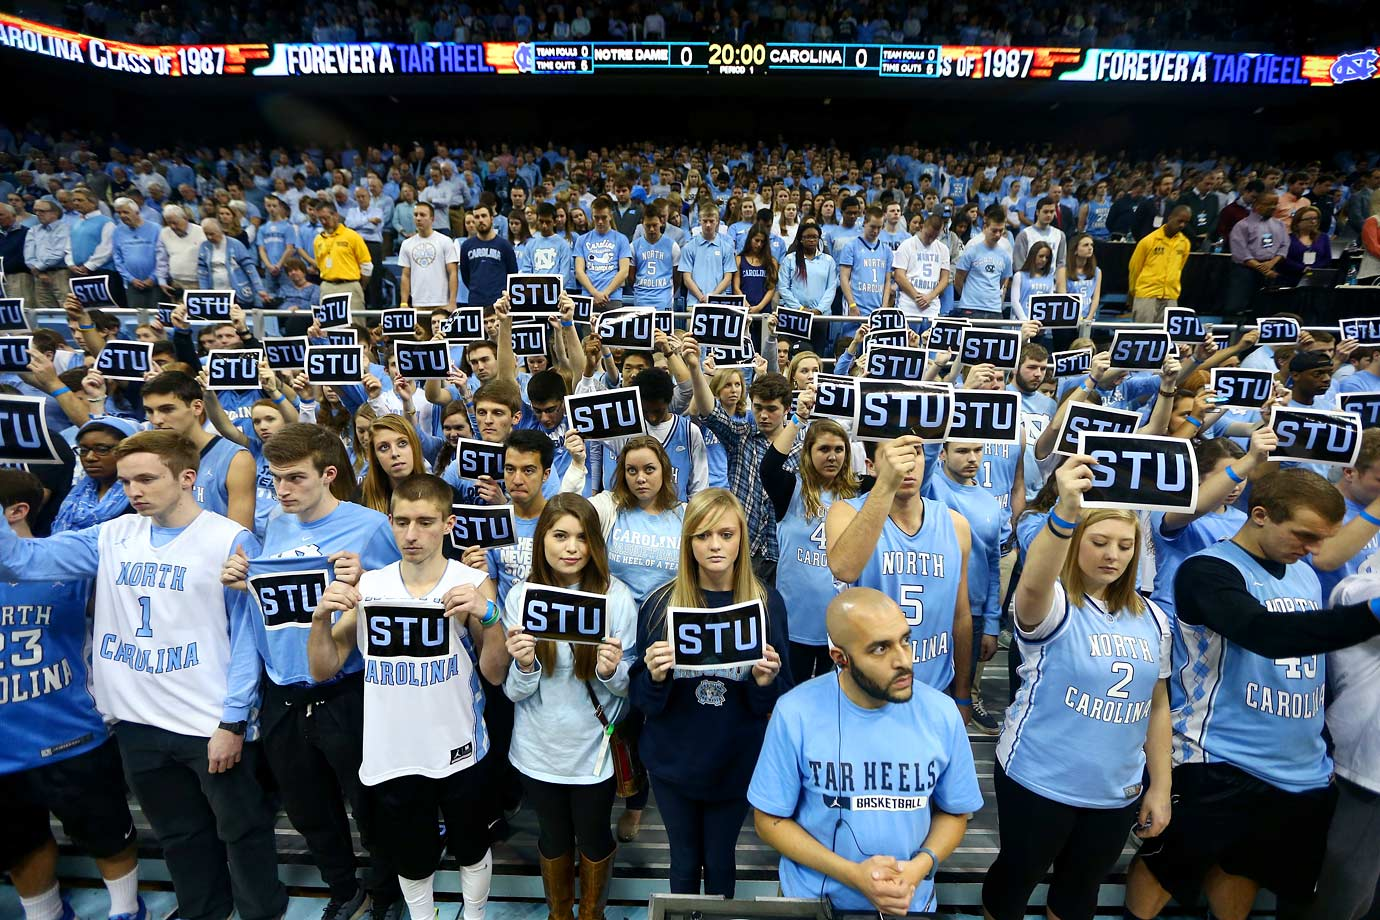 North Carolina fans honor Tar Heel alum Stuart Scott during a moment of silence before their game against Notre Dame at Dean Smith Center on Jan. 5, 2015 in Chapel Hill, N.C.